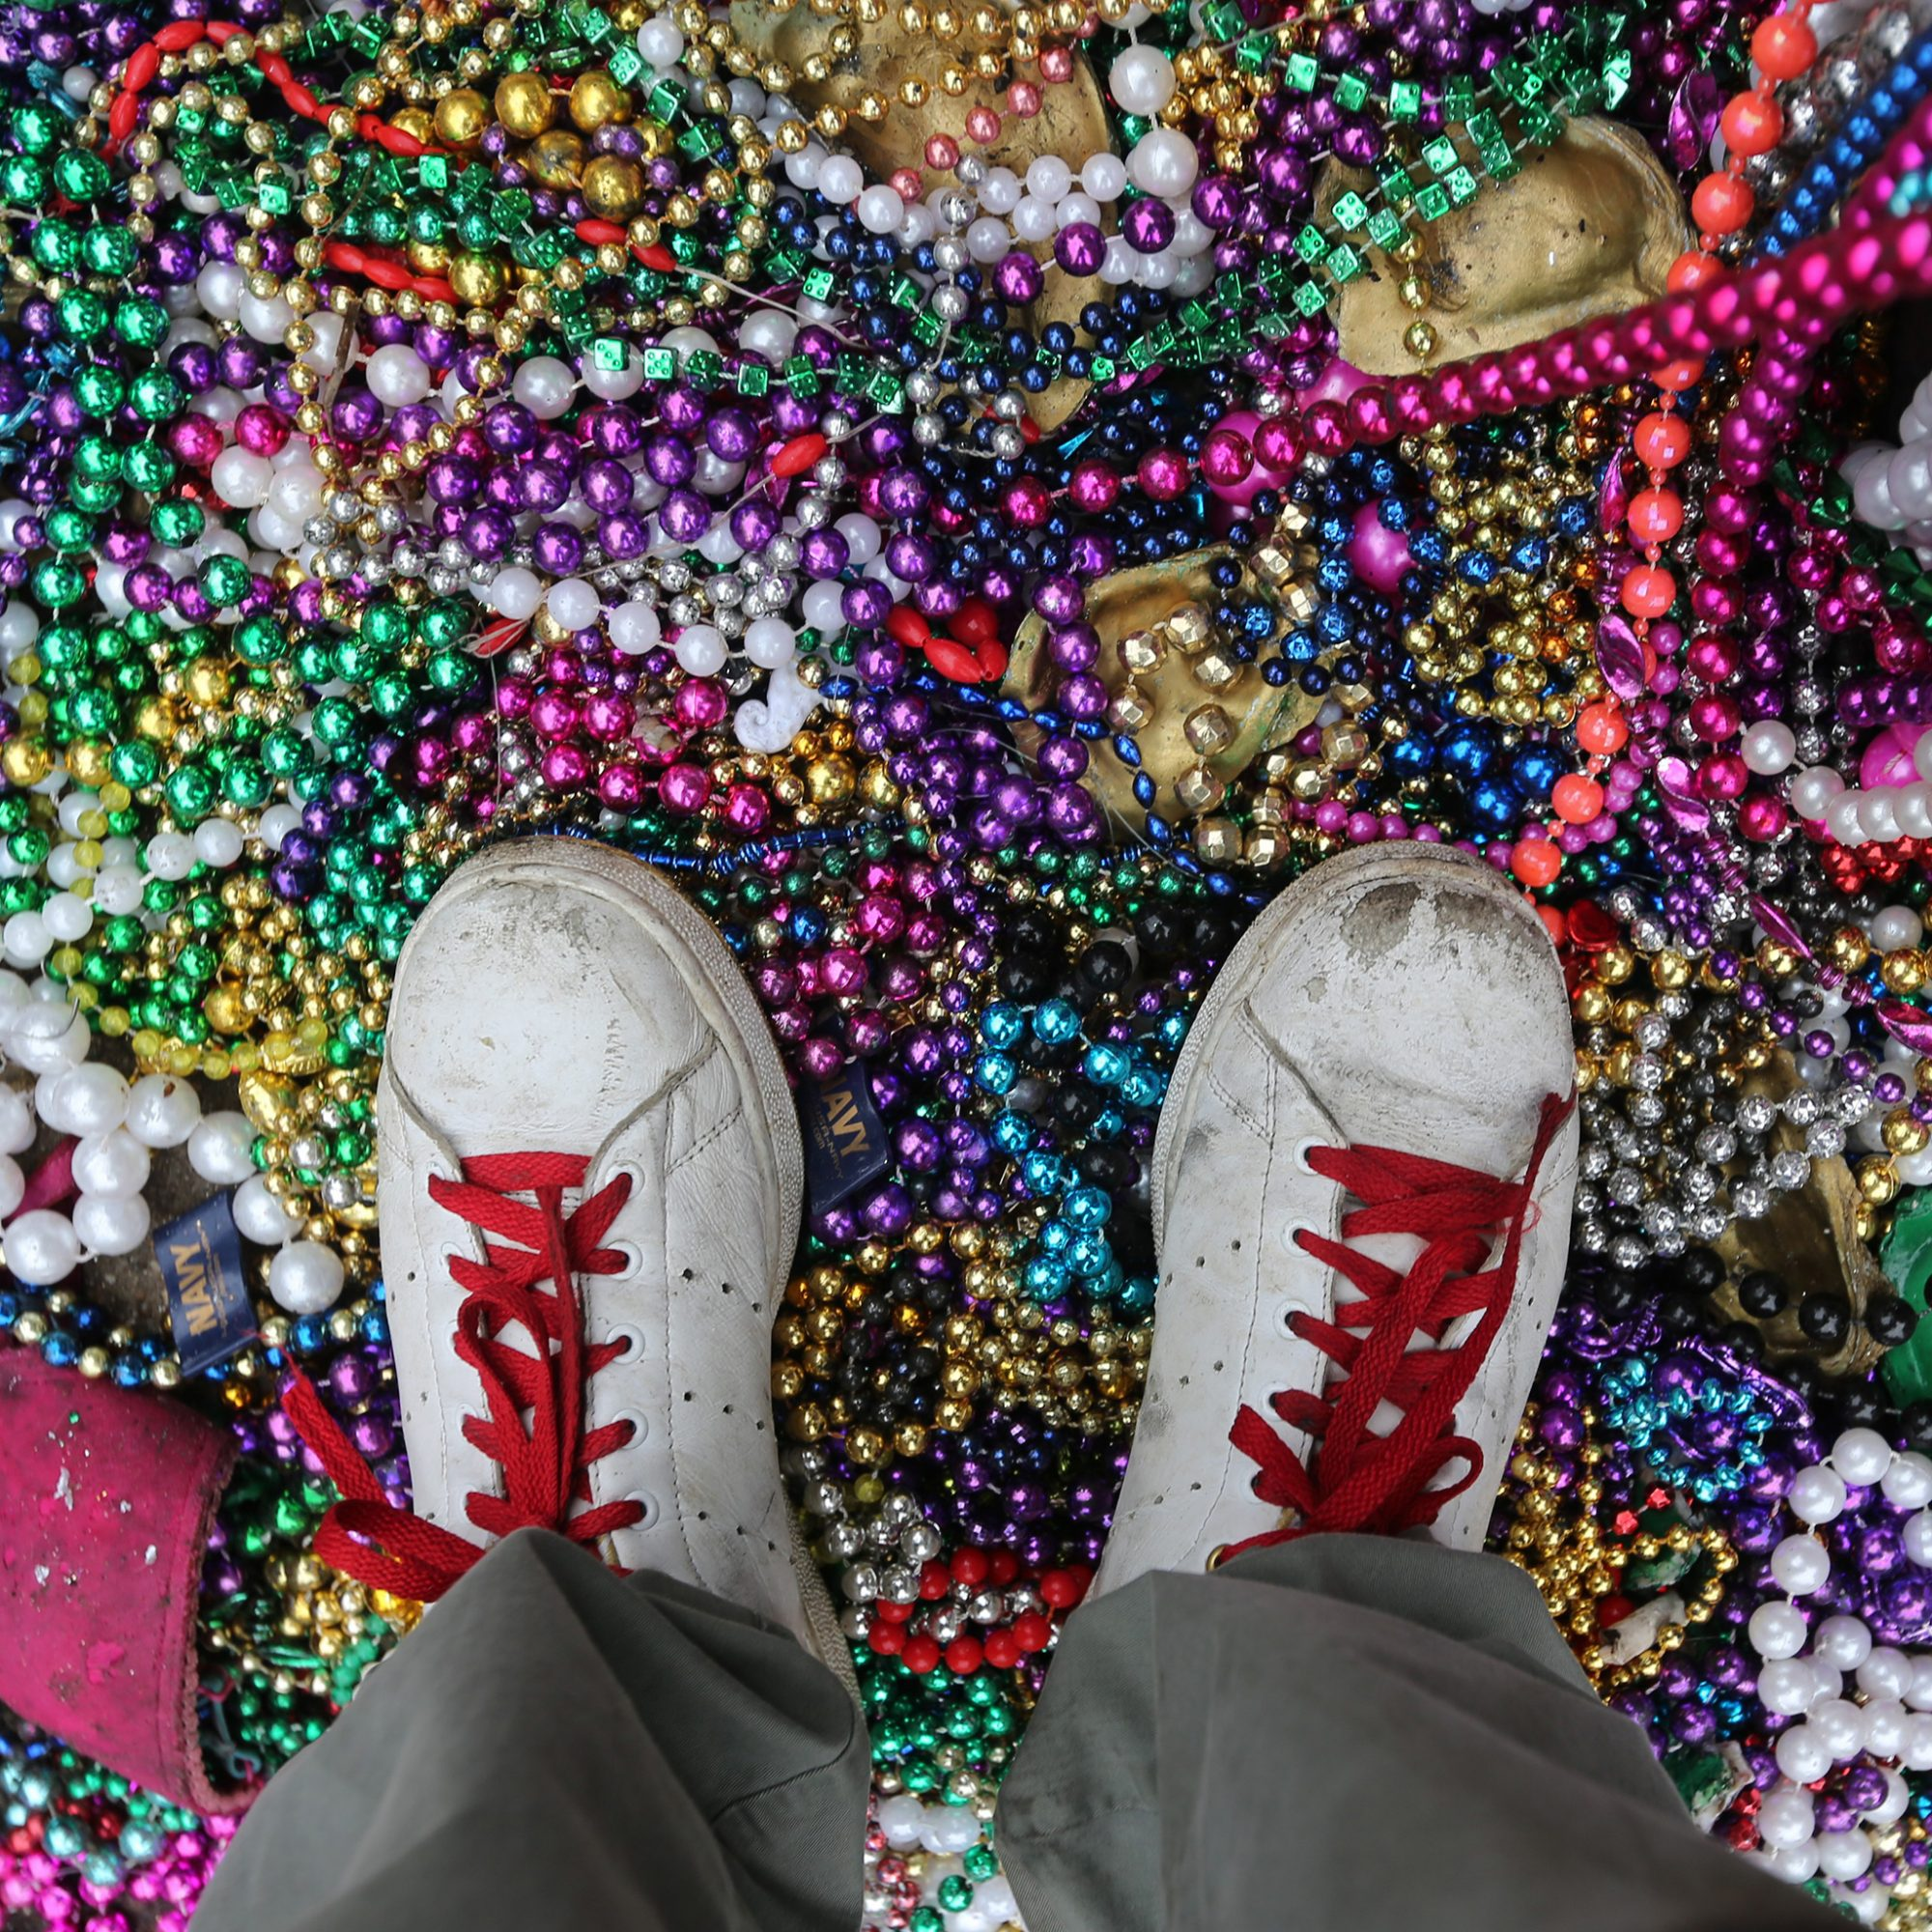 FWX 5 REASONS TO EXPOSE YOURSELF AT MARDI GRAS BEADS